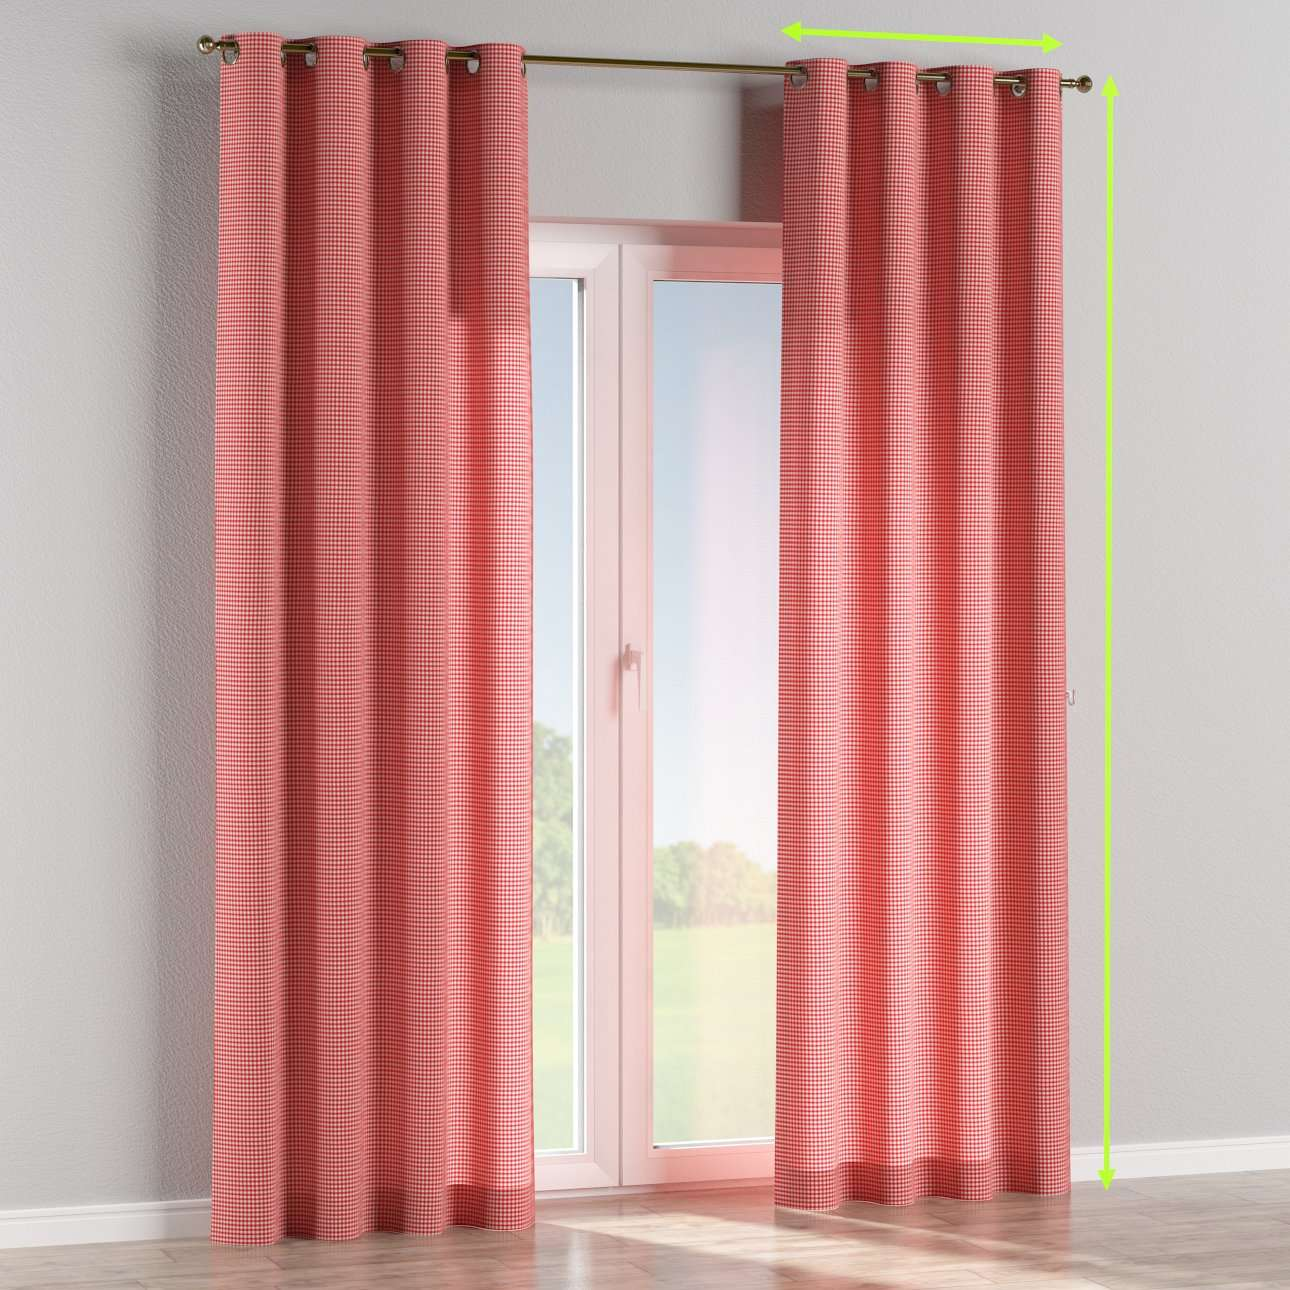 Eyelet lined curtains in collection Quadro, fabric: 136-15